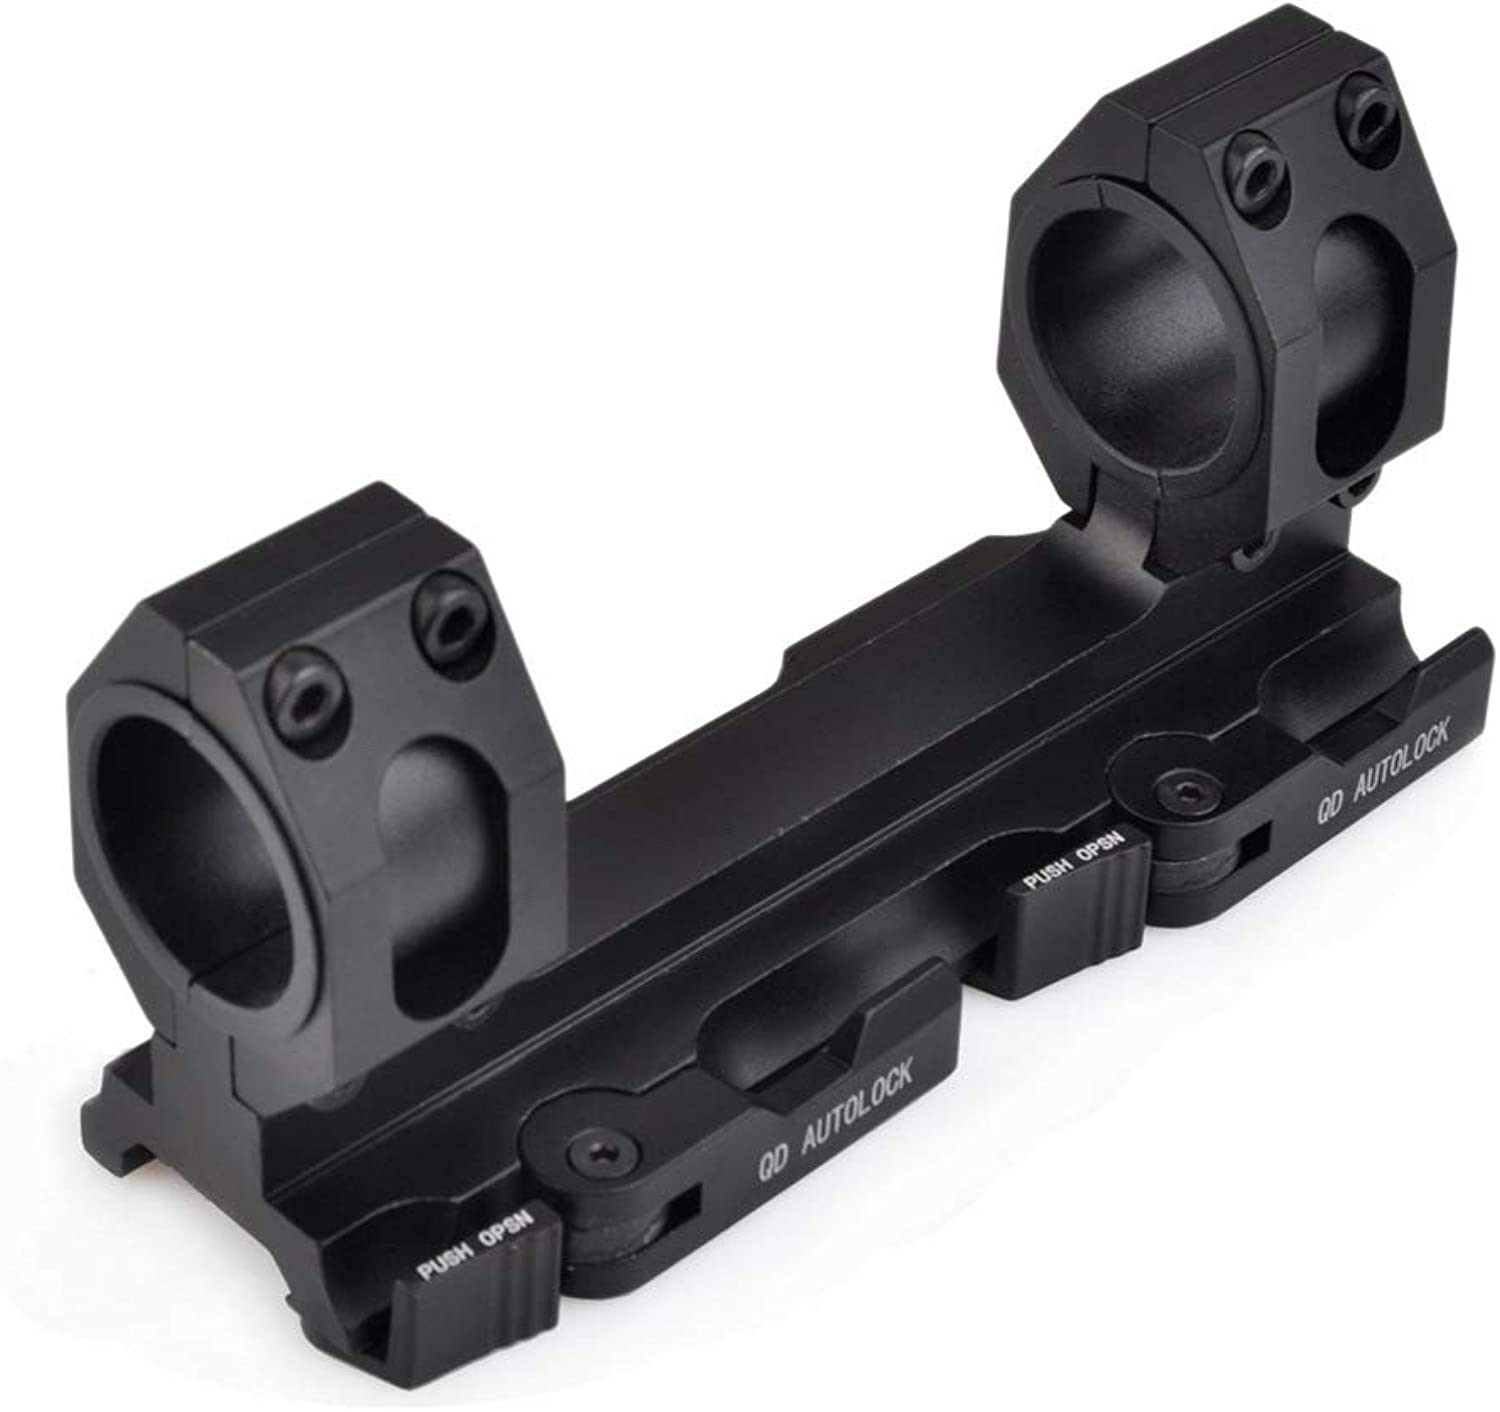 SEIGNEER ACOG 25.4mm30mm,Tactical Airsoft Rifle Scope Mount with QD Auto Lock